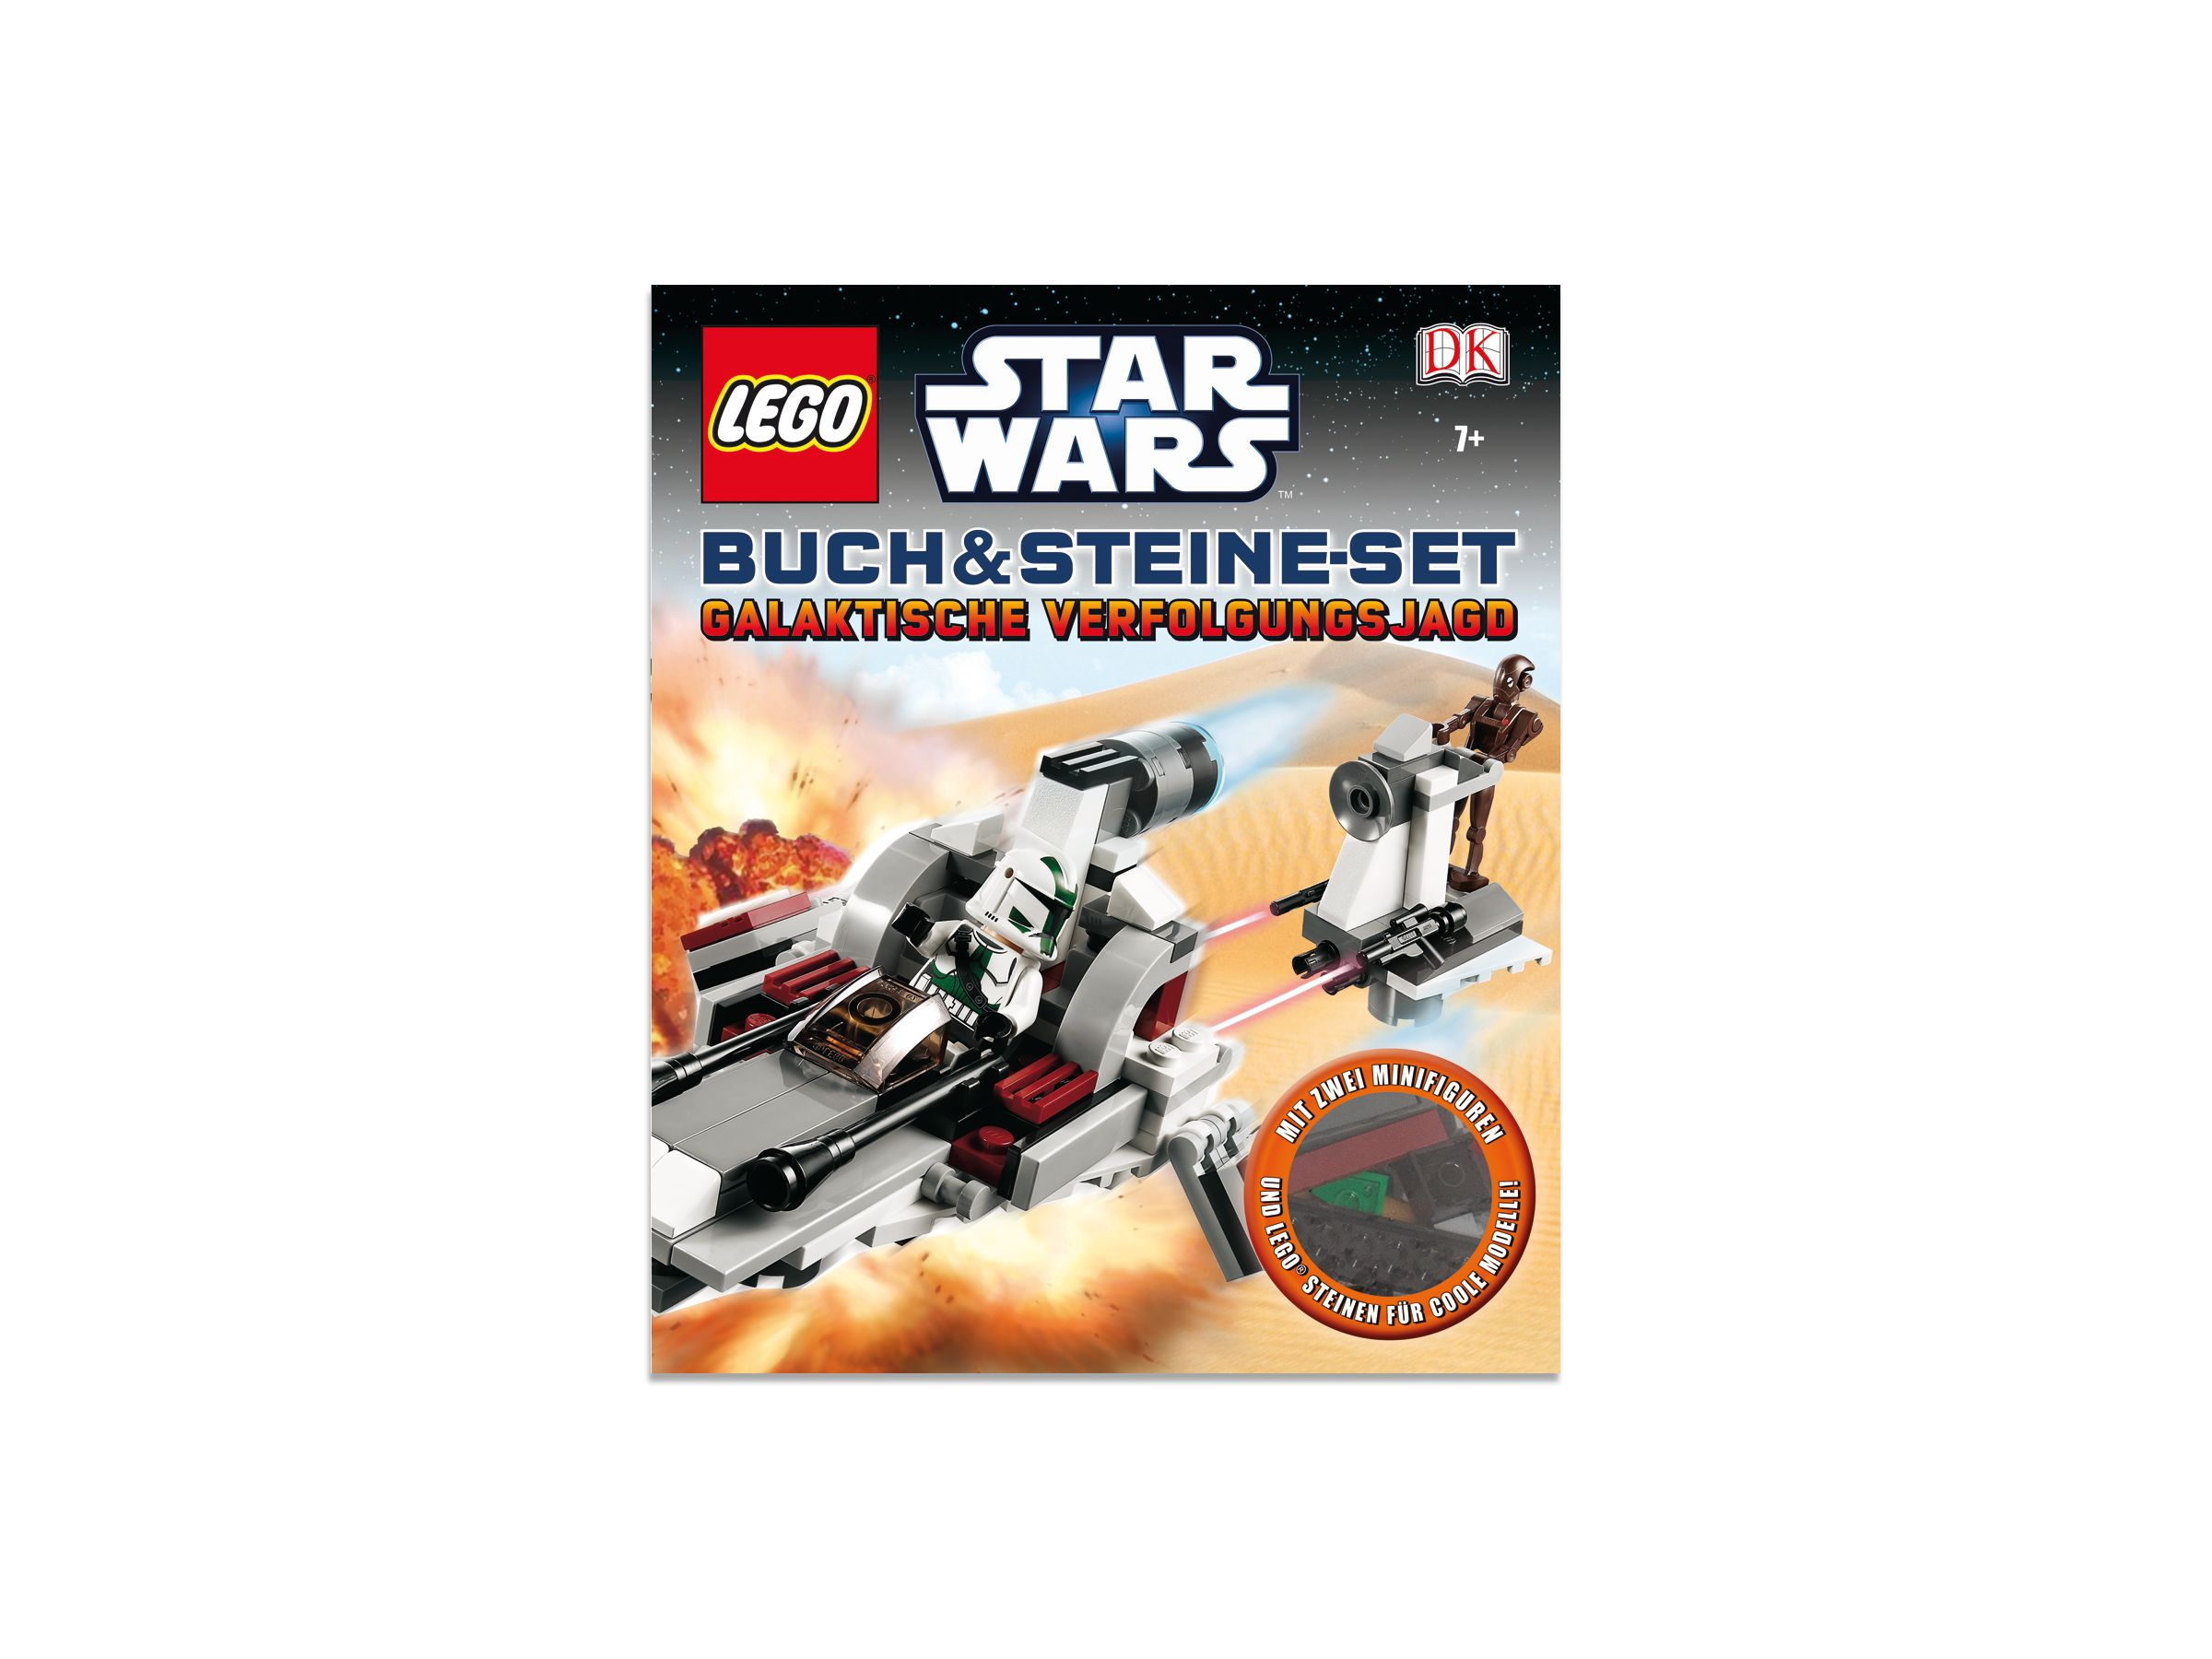 lego 5002898 lego brickmaster star wars intergalaktische verfolgungsjagd buch 2014 ab 17. Black Bedroom Furniture Sets. Home Design Ideas